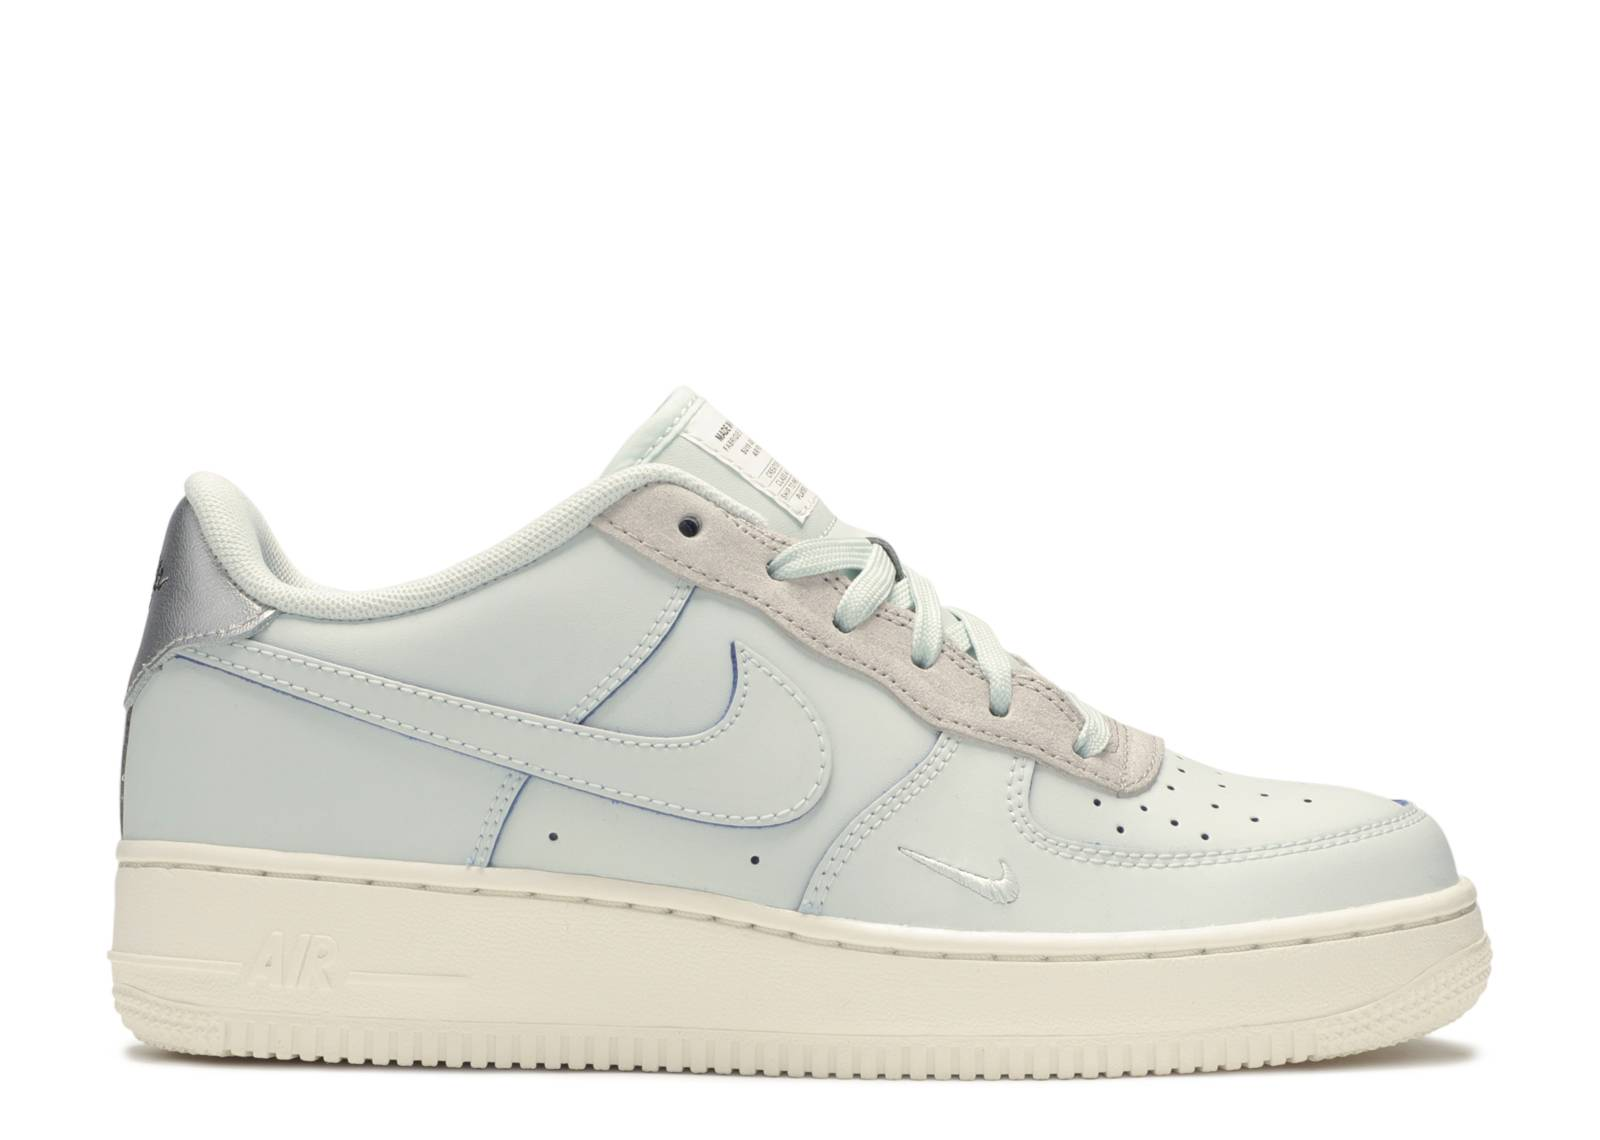 """Devin Booker x Air Force 1 Low GS """"Moss Point"""""""